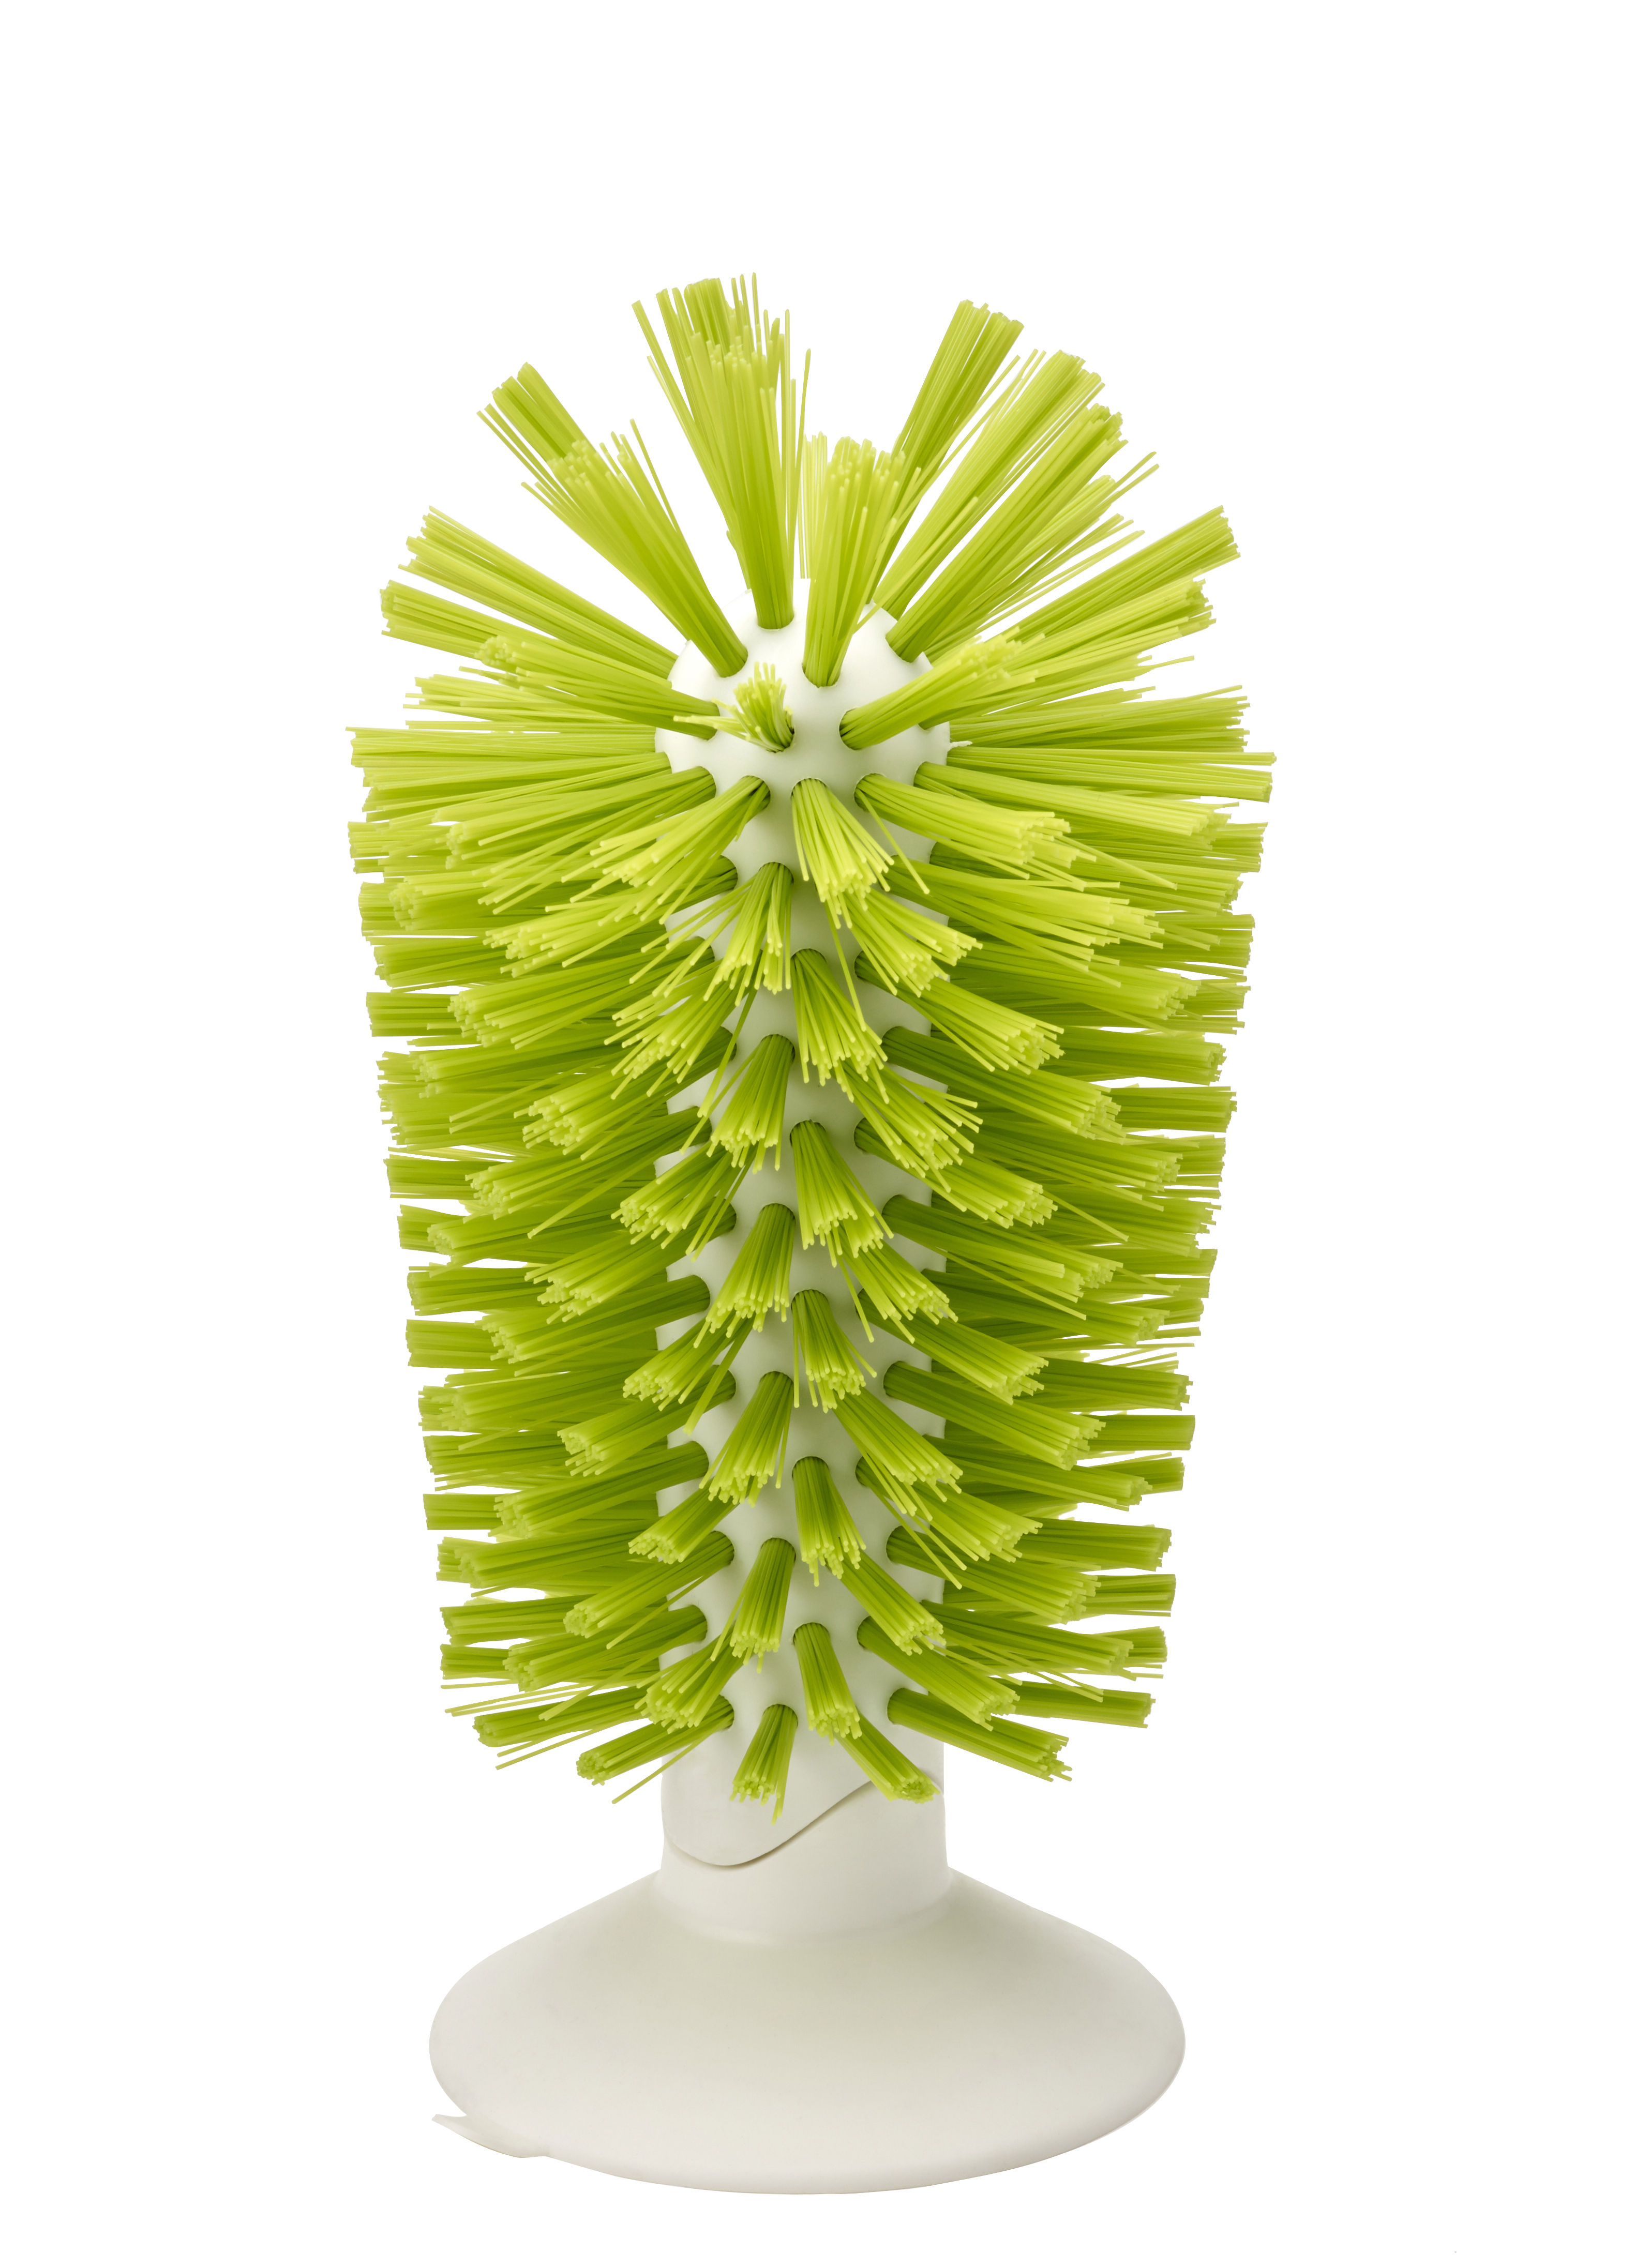 Kitchenware - Kitchen Sink Accessories - Brush-up Glasses brush - Suction by Joseph Joseph - Green - ABS, Nylon